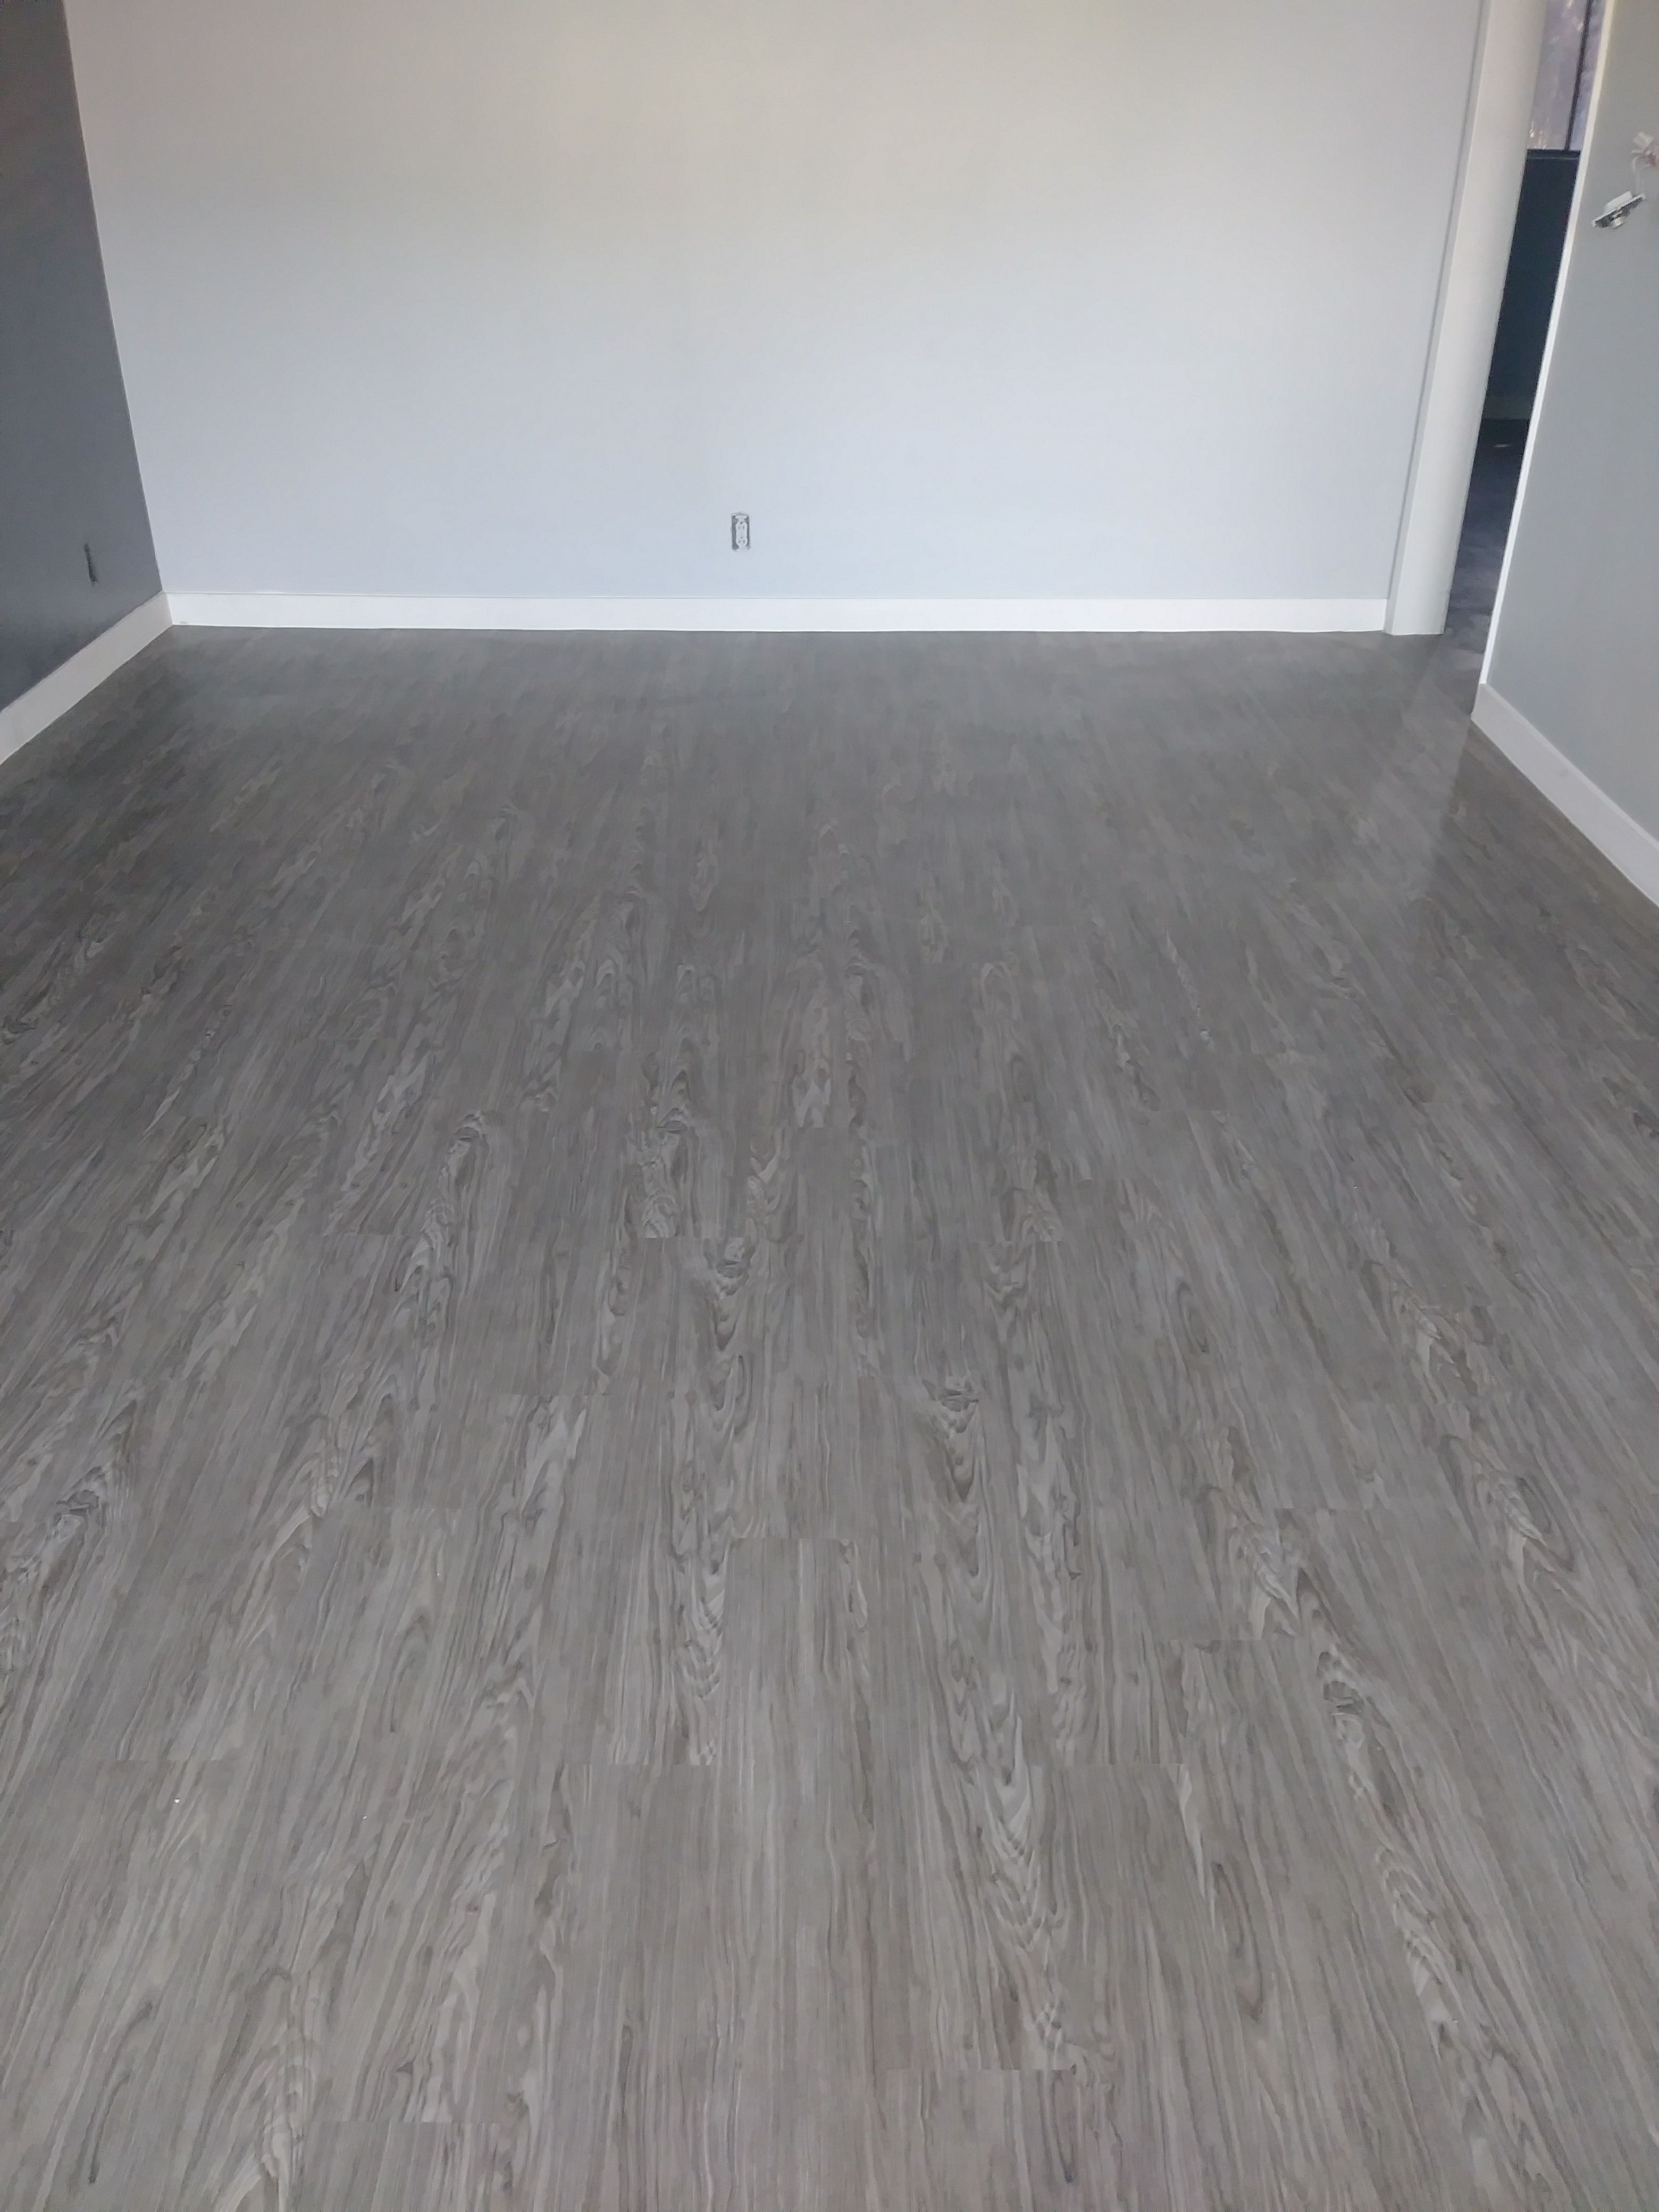 Plank Vinyl Flooring In Midland Grey Color Call Us For A Free Estimate Flooring Plankvinyl Installation Flooring Types Of Wood Flooring Laminate Flooring